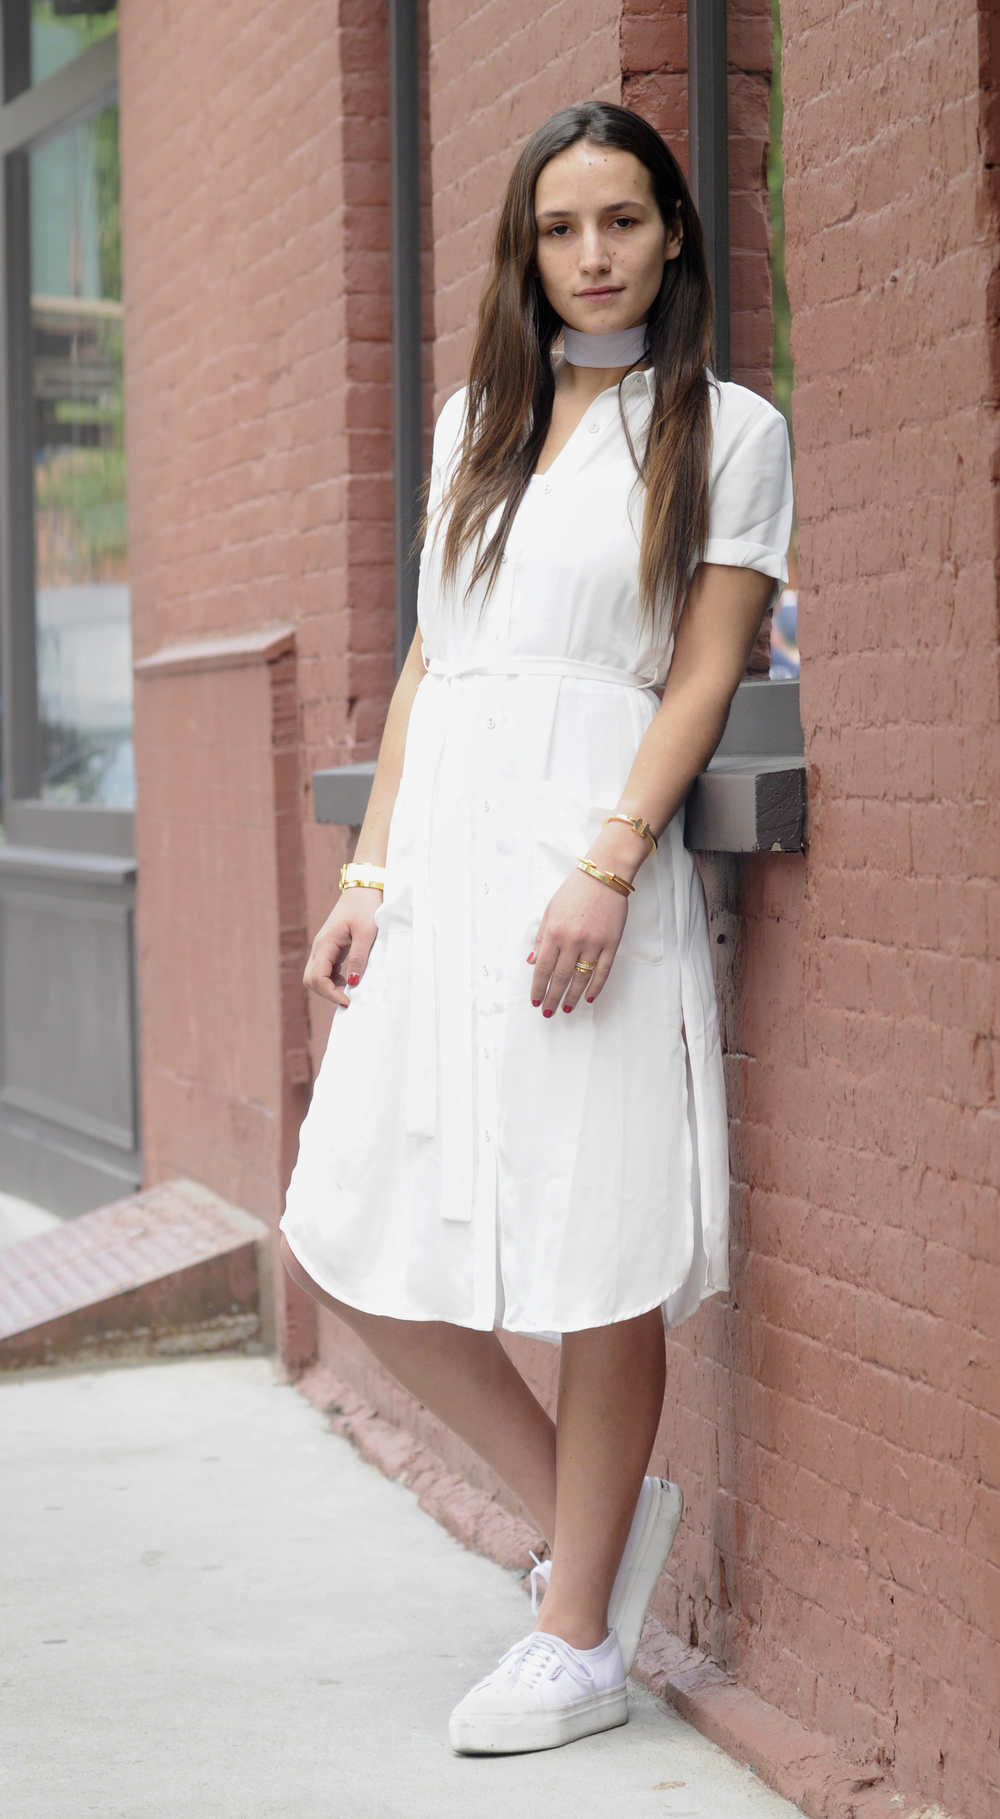 NYC STREET STYLE SOPHIE BICKLEY OF YIN2MYYANG NYC STREET STYLE.JPG